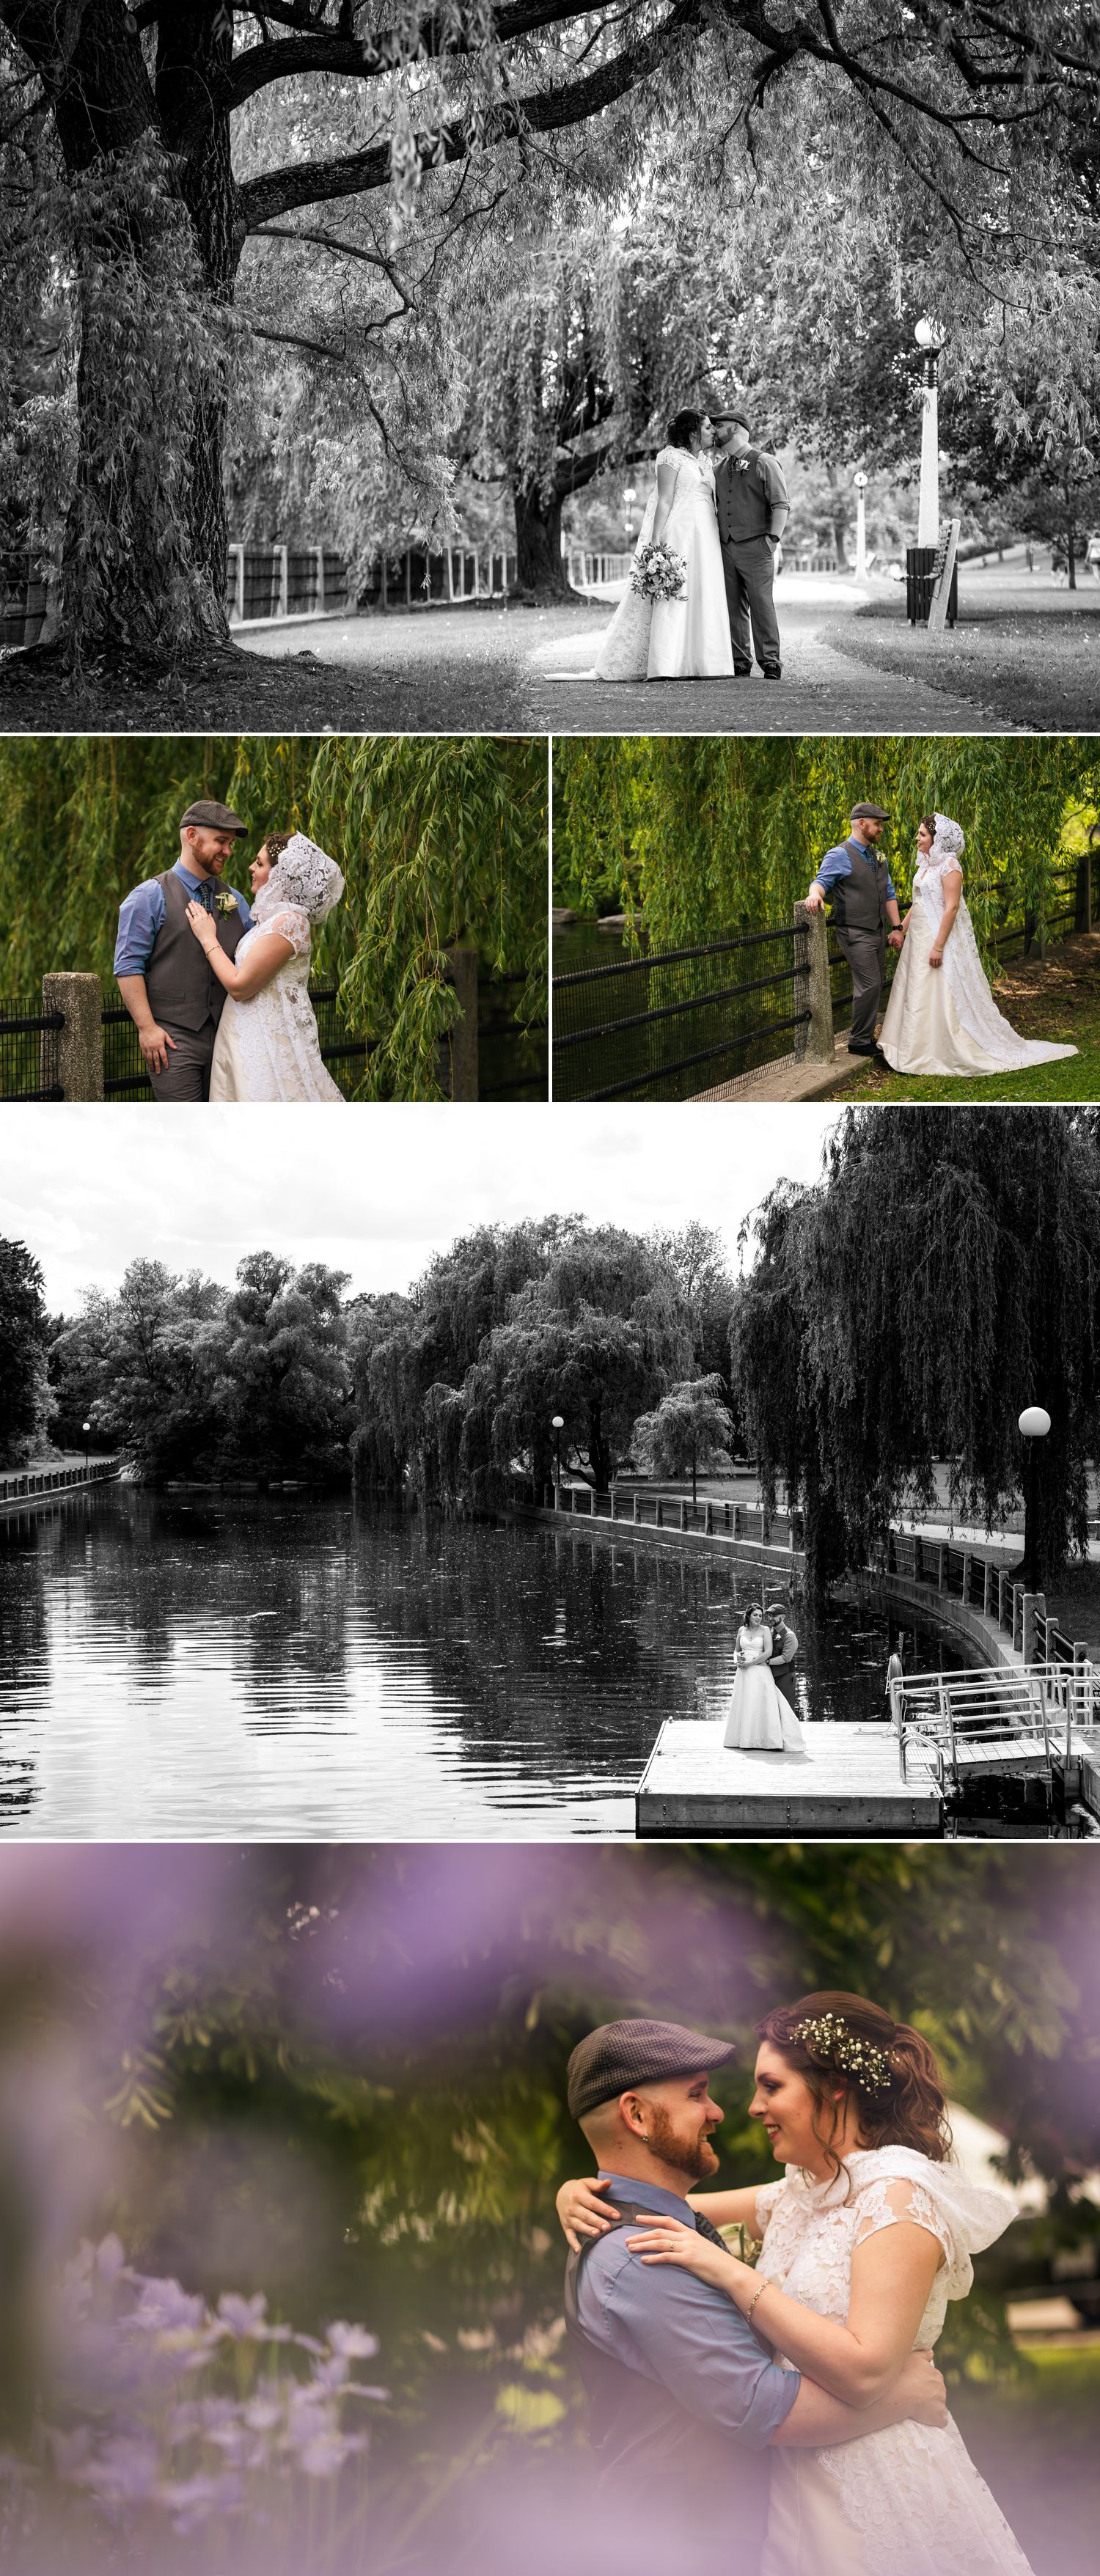 Couples portraits of the bride and groom at Linden Terrace by the Rideau Canal in downtown Ottawa